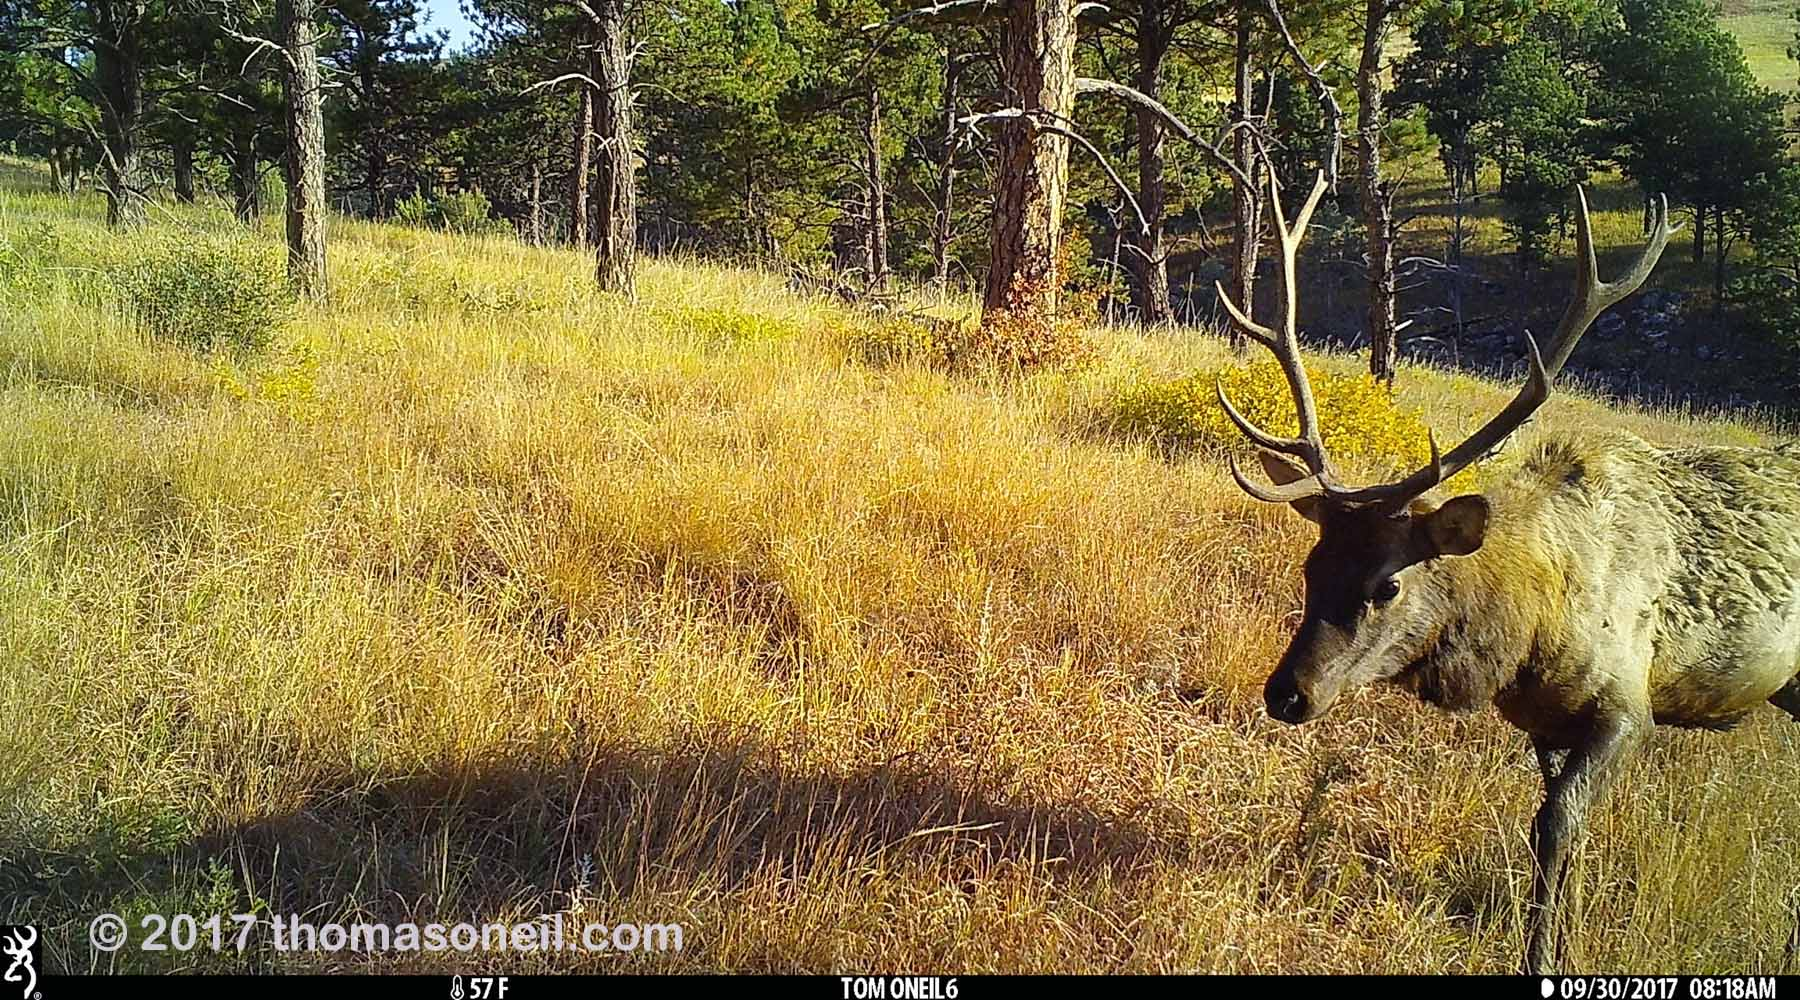 One of the few images I got from the Browning trailcam before it was damaged by fire, Wind Cave National Park.